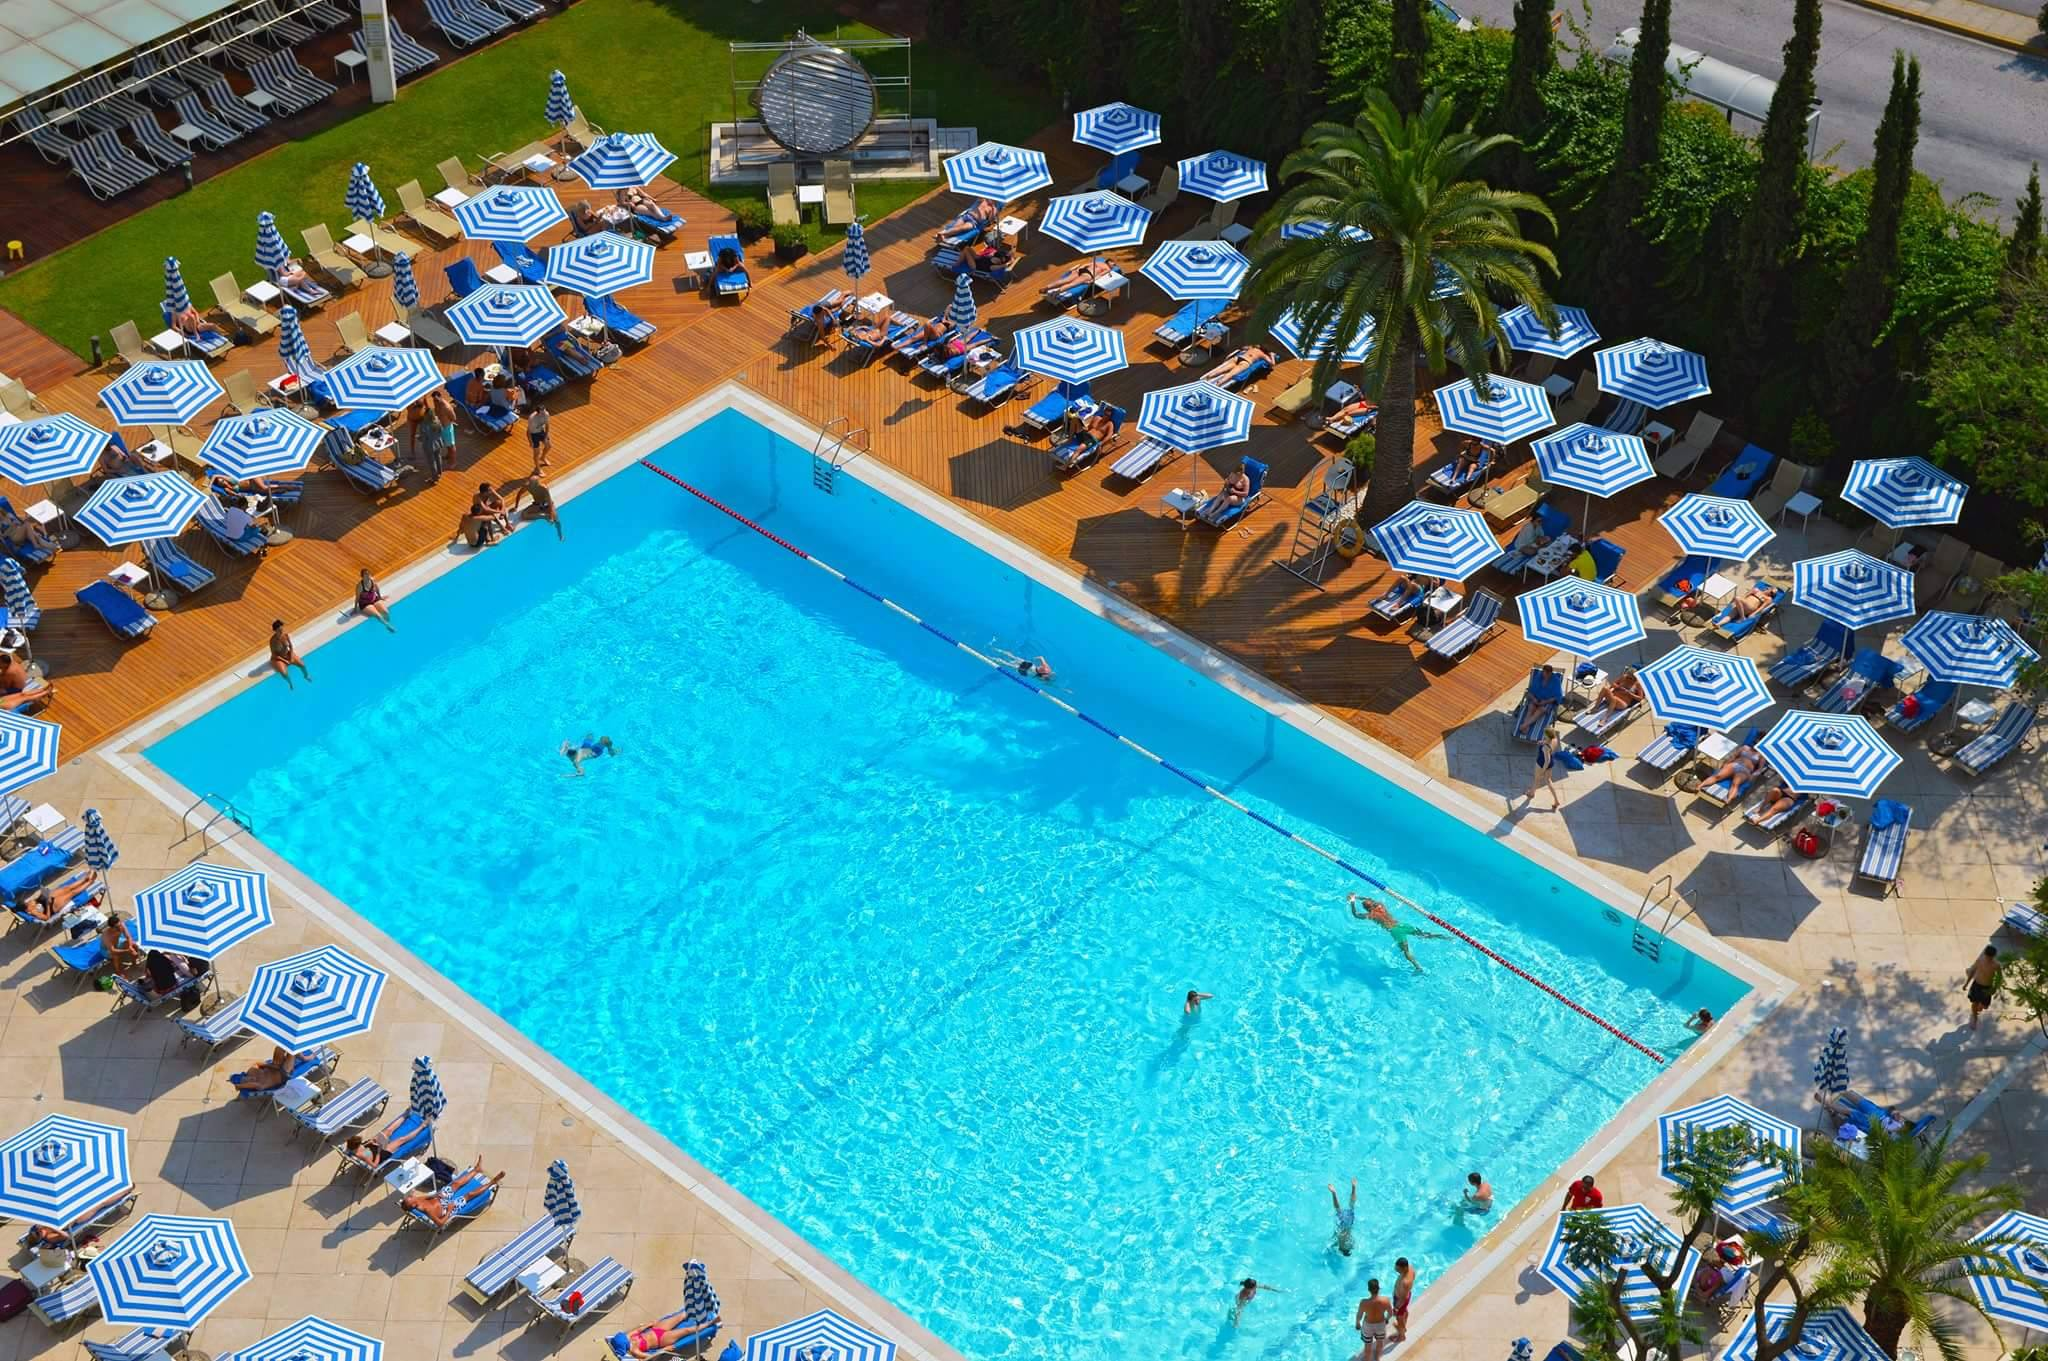 Hilton Athens hotel's outdoor swimming pool in the heart of Athens (Picture via  Facebook )